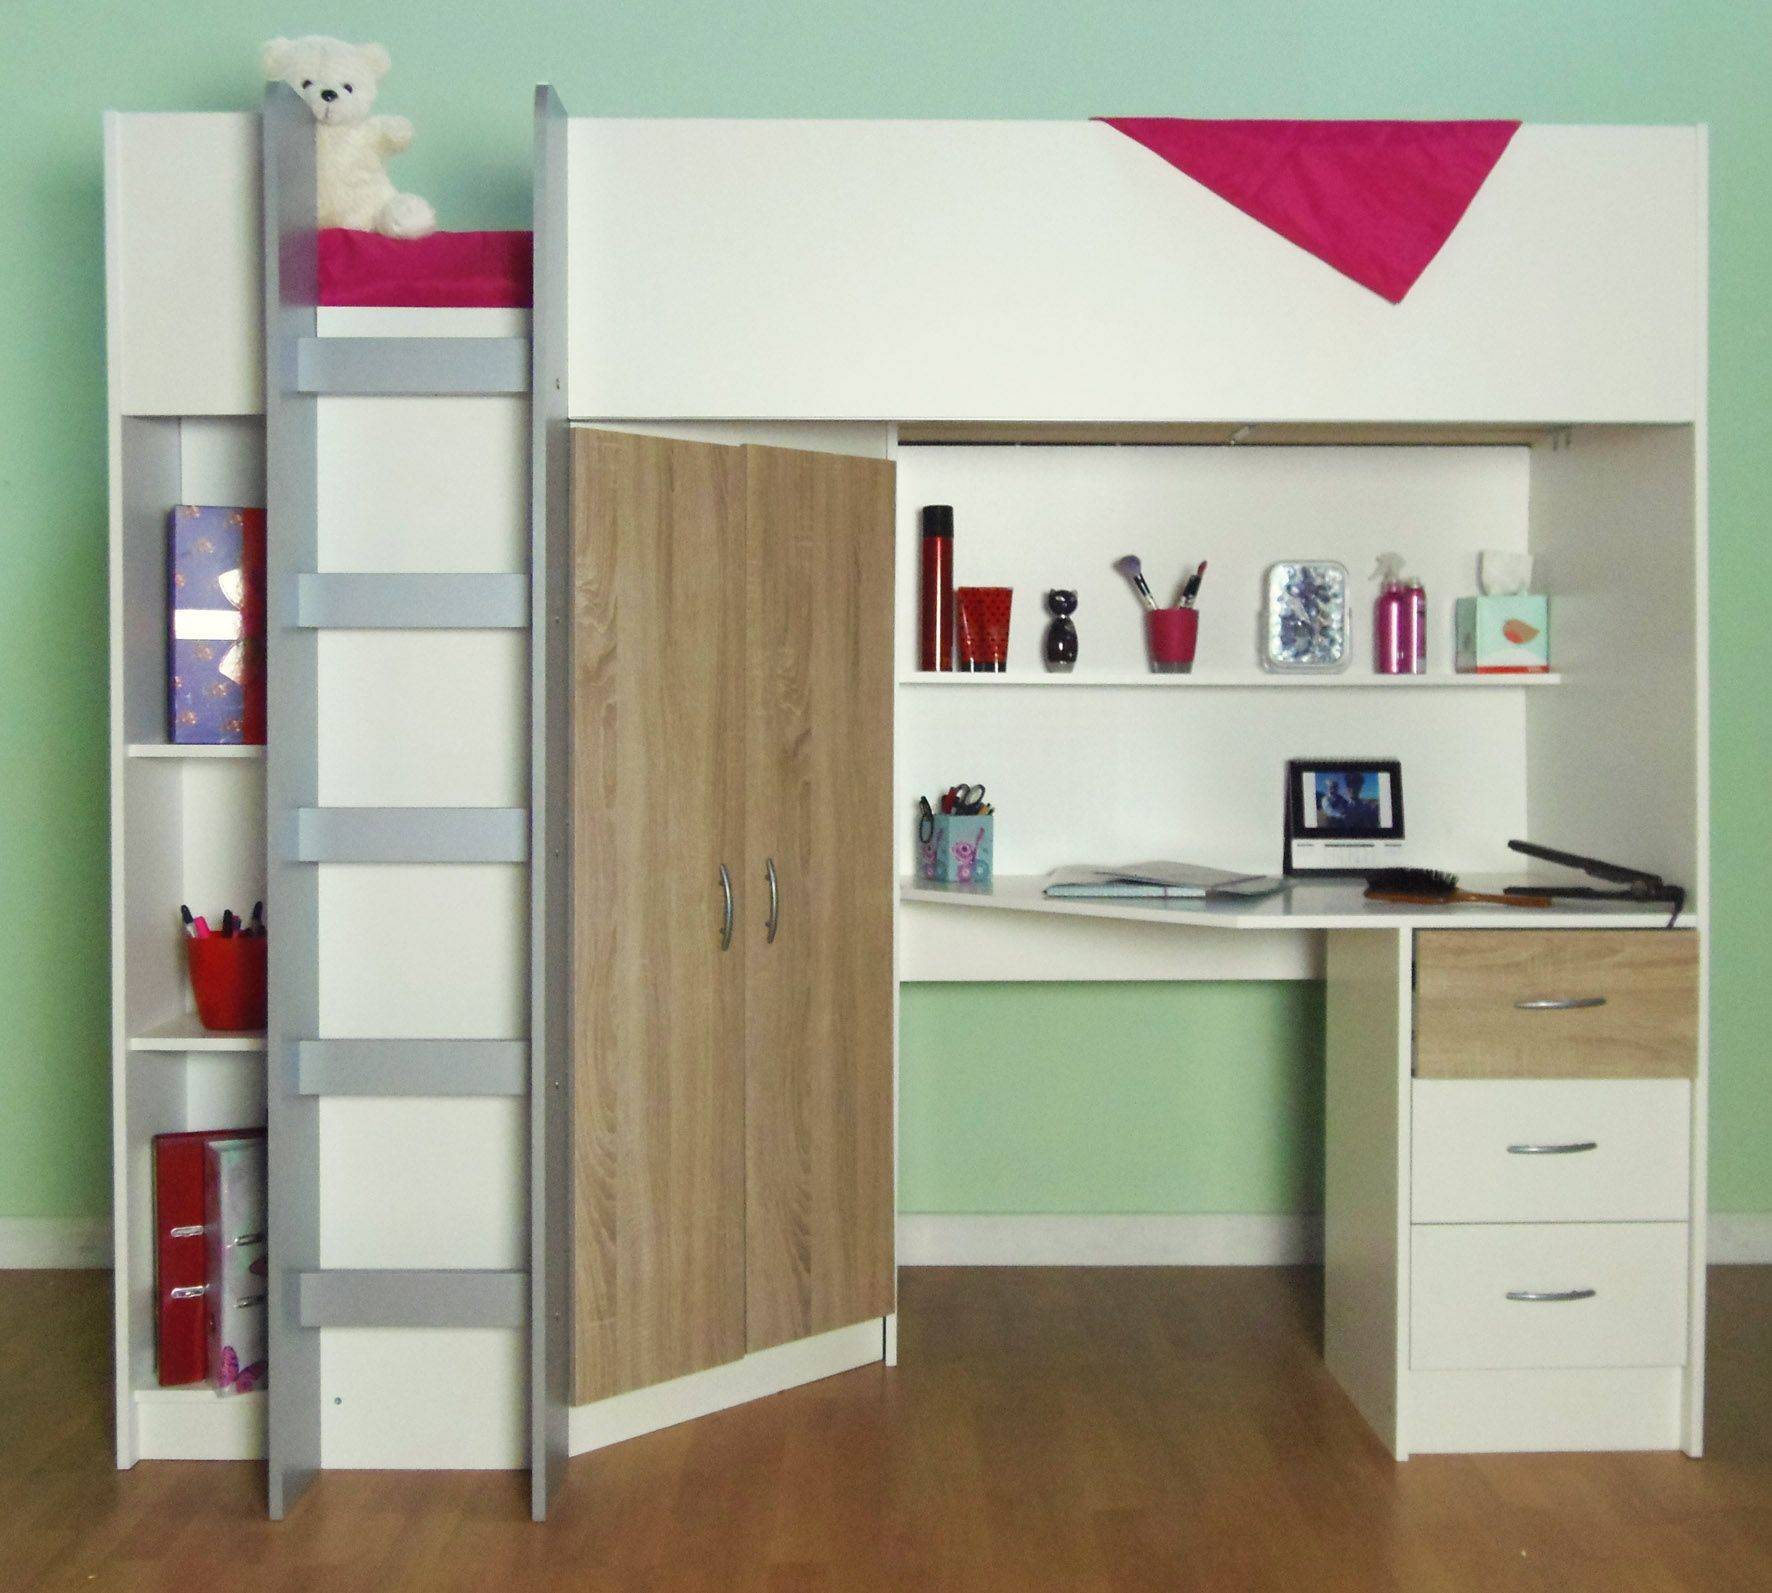 Cabin bed cambridge high sleeper m2430 ideas for my next for High sleeper bed